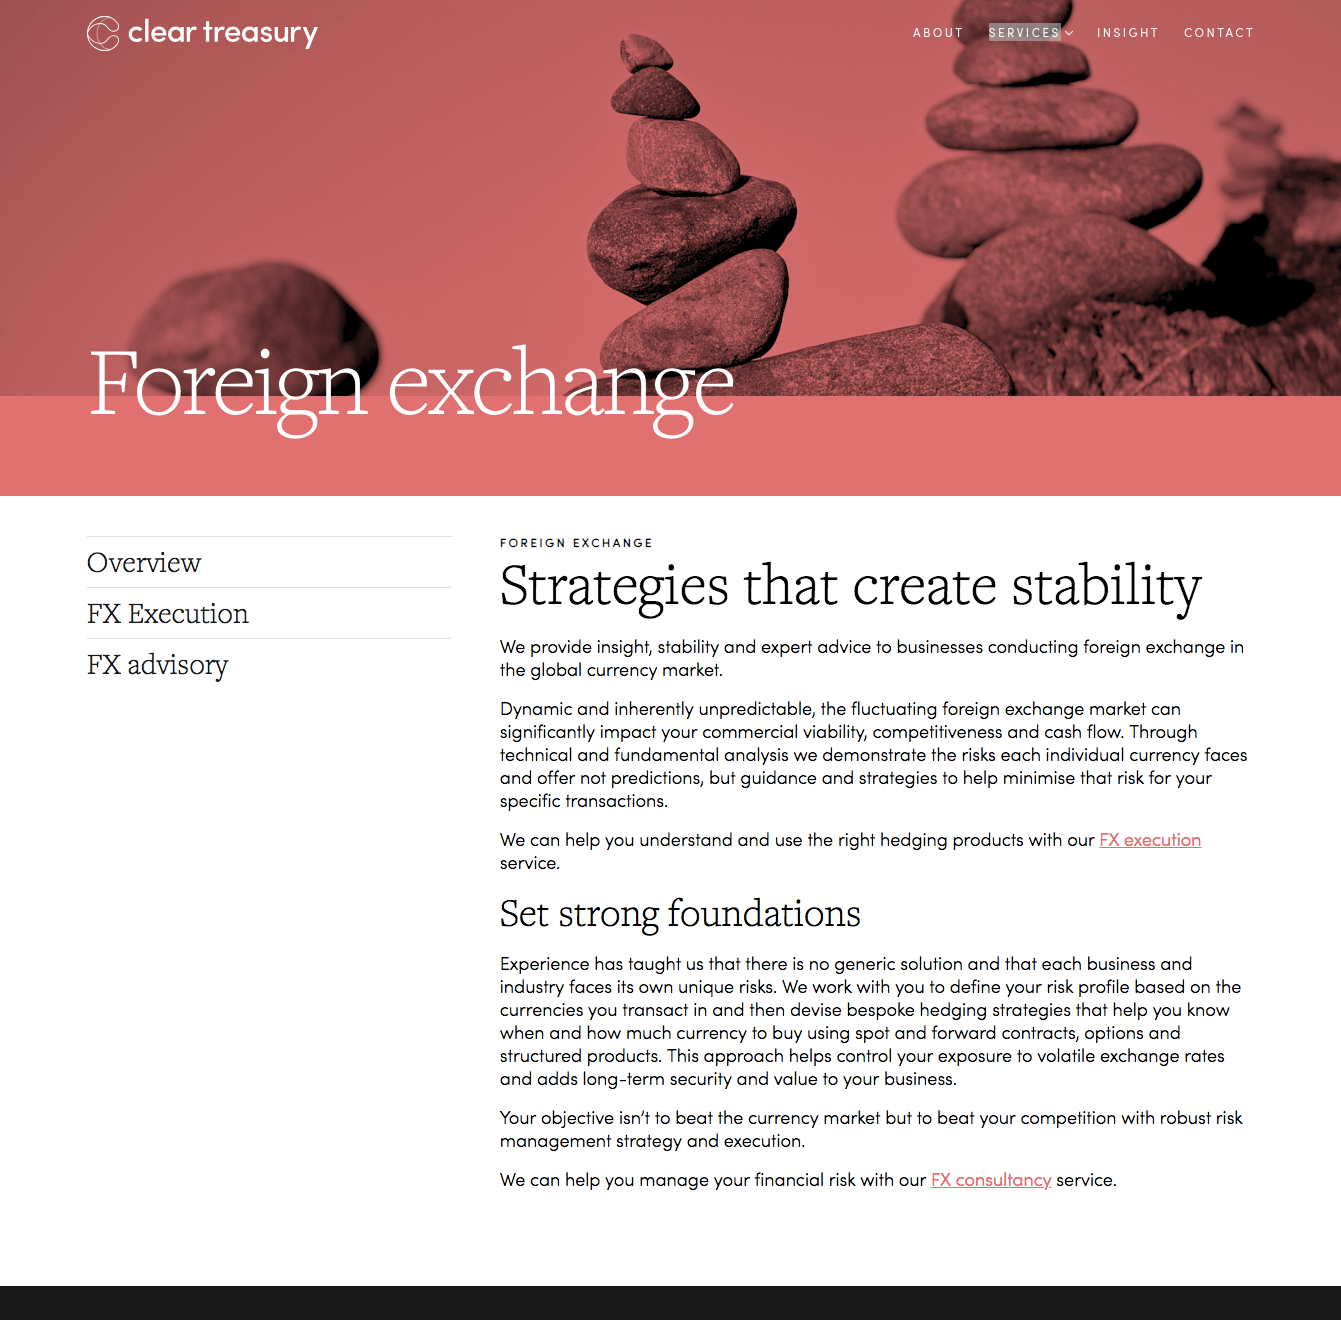 Foreign exchange services page